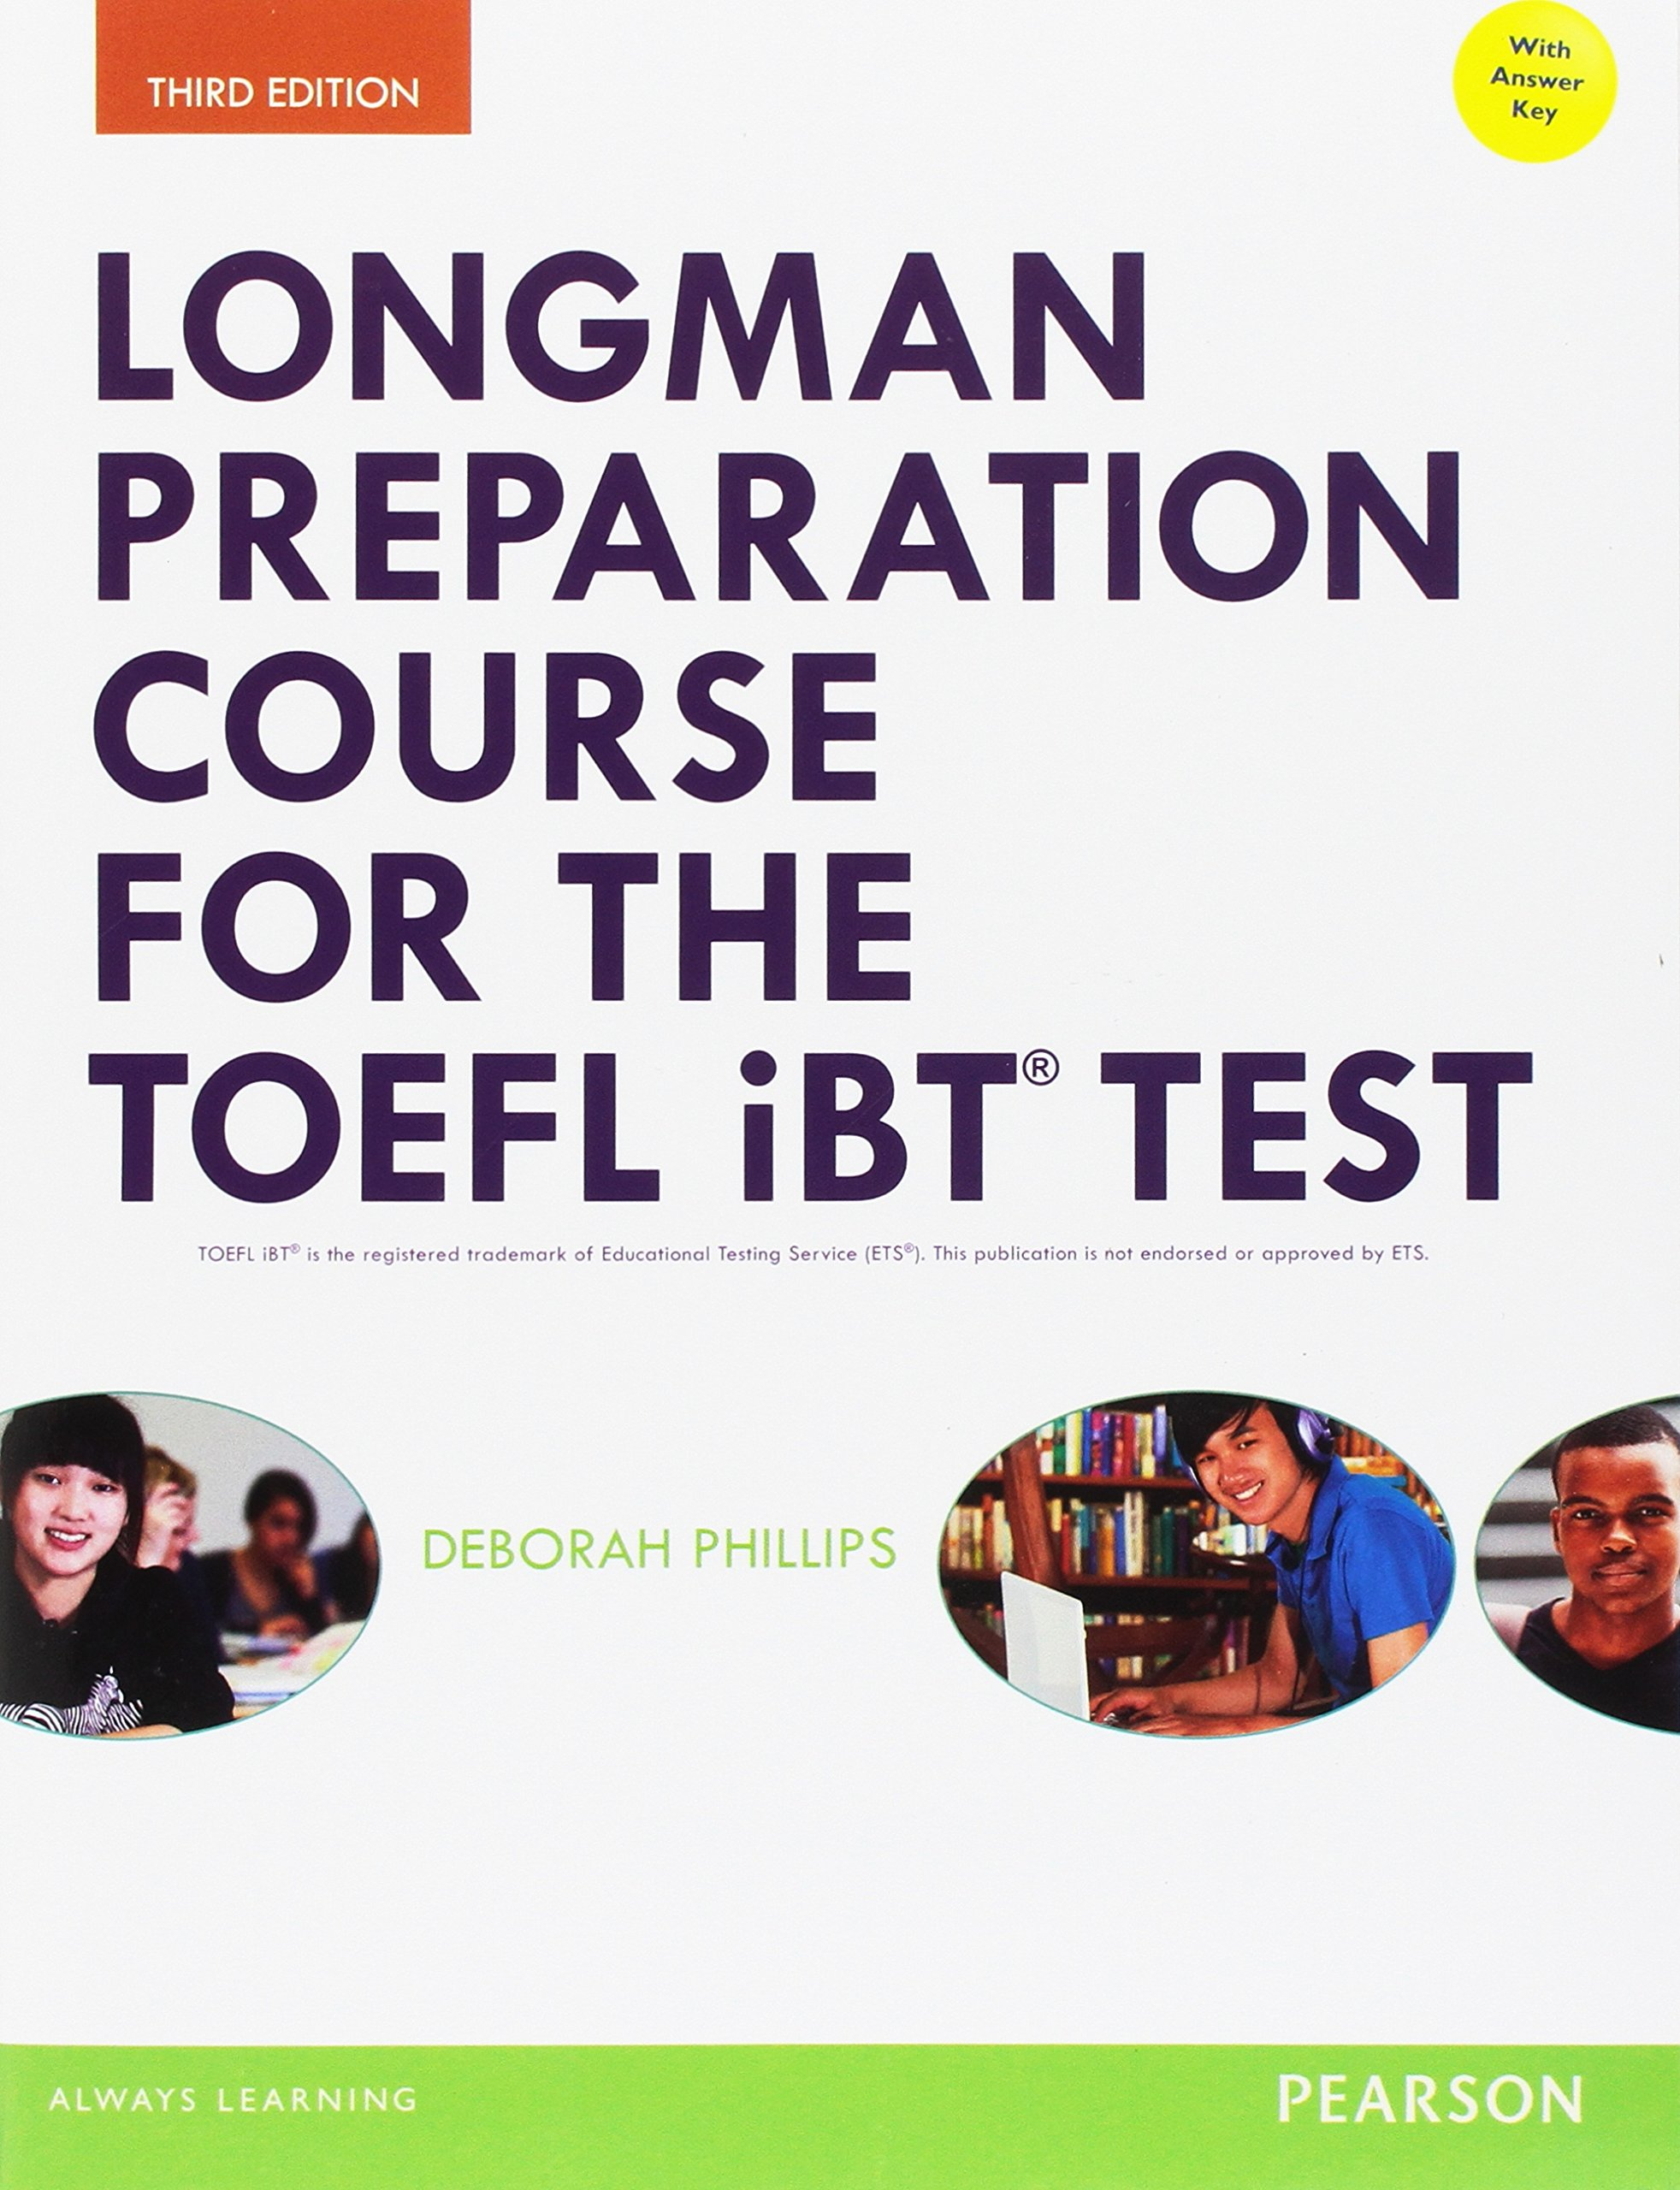 Longman Preparation Course for the TOEFL iBT Test with Answer Key by Pearson